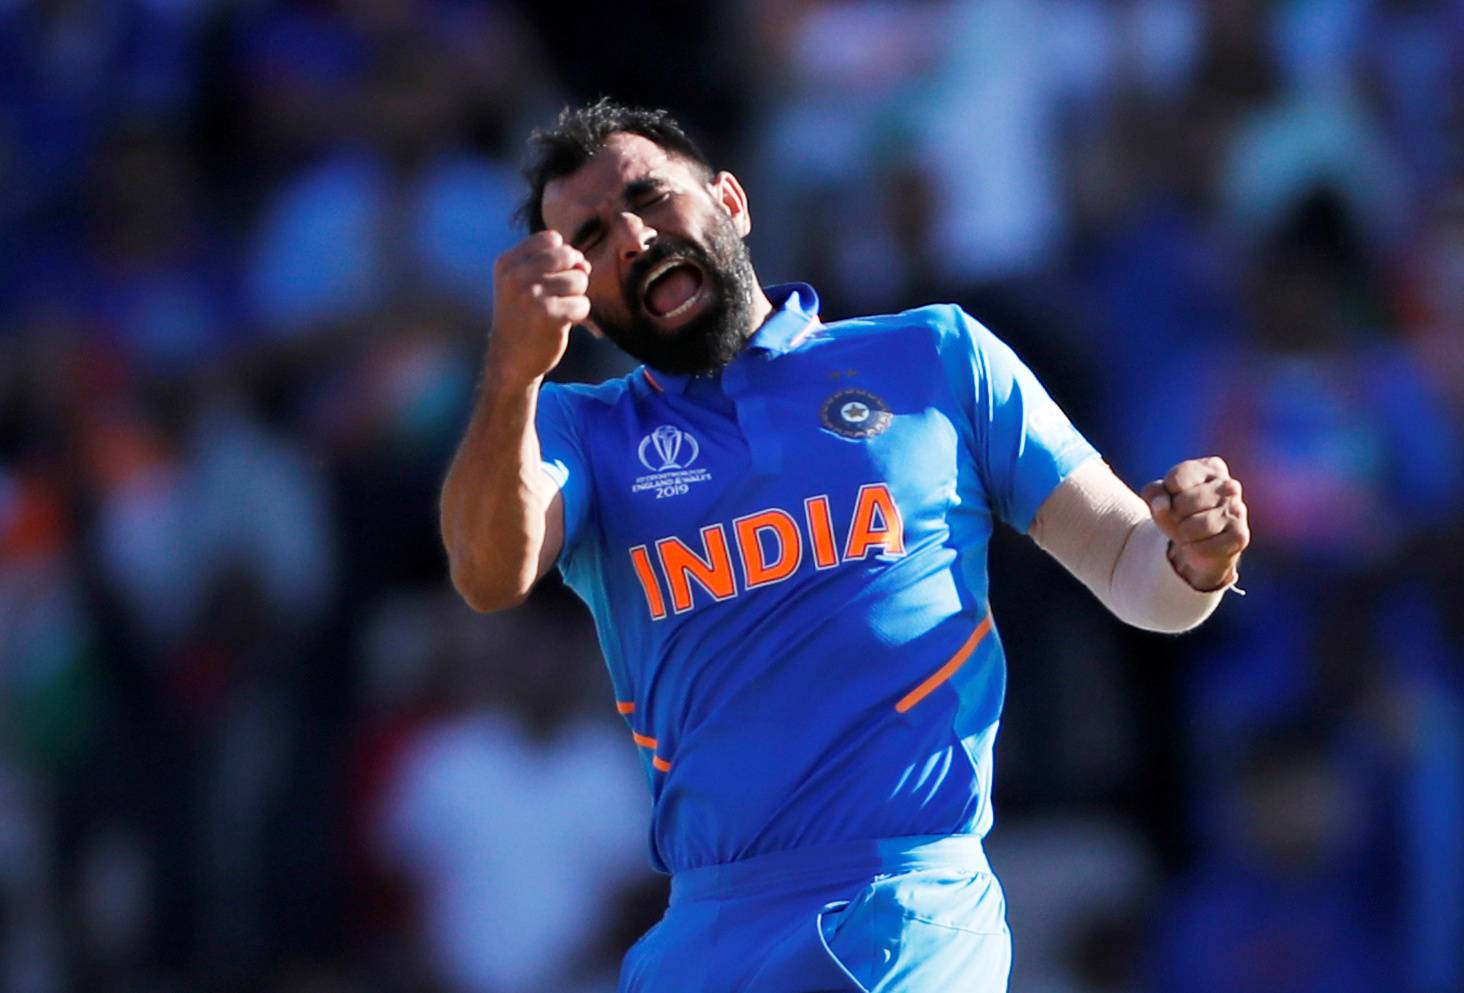 India's Mohammed Shami celebrates taking the wicket of Afghanistan's Aftab Alam during the ICC Cricket World Cup match at The Ageas Bowl, Southampton, Britain, on Saturday. — Reuters